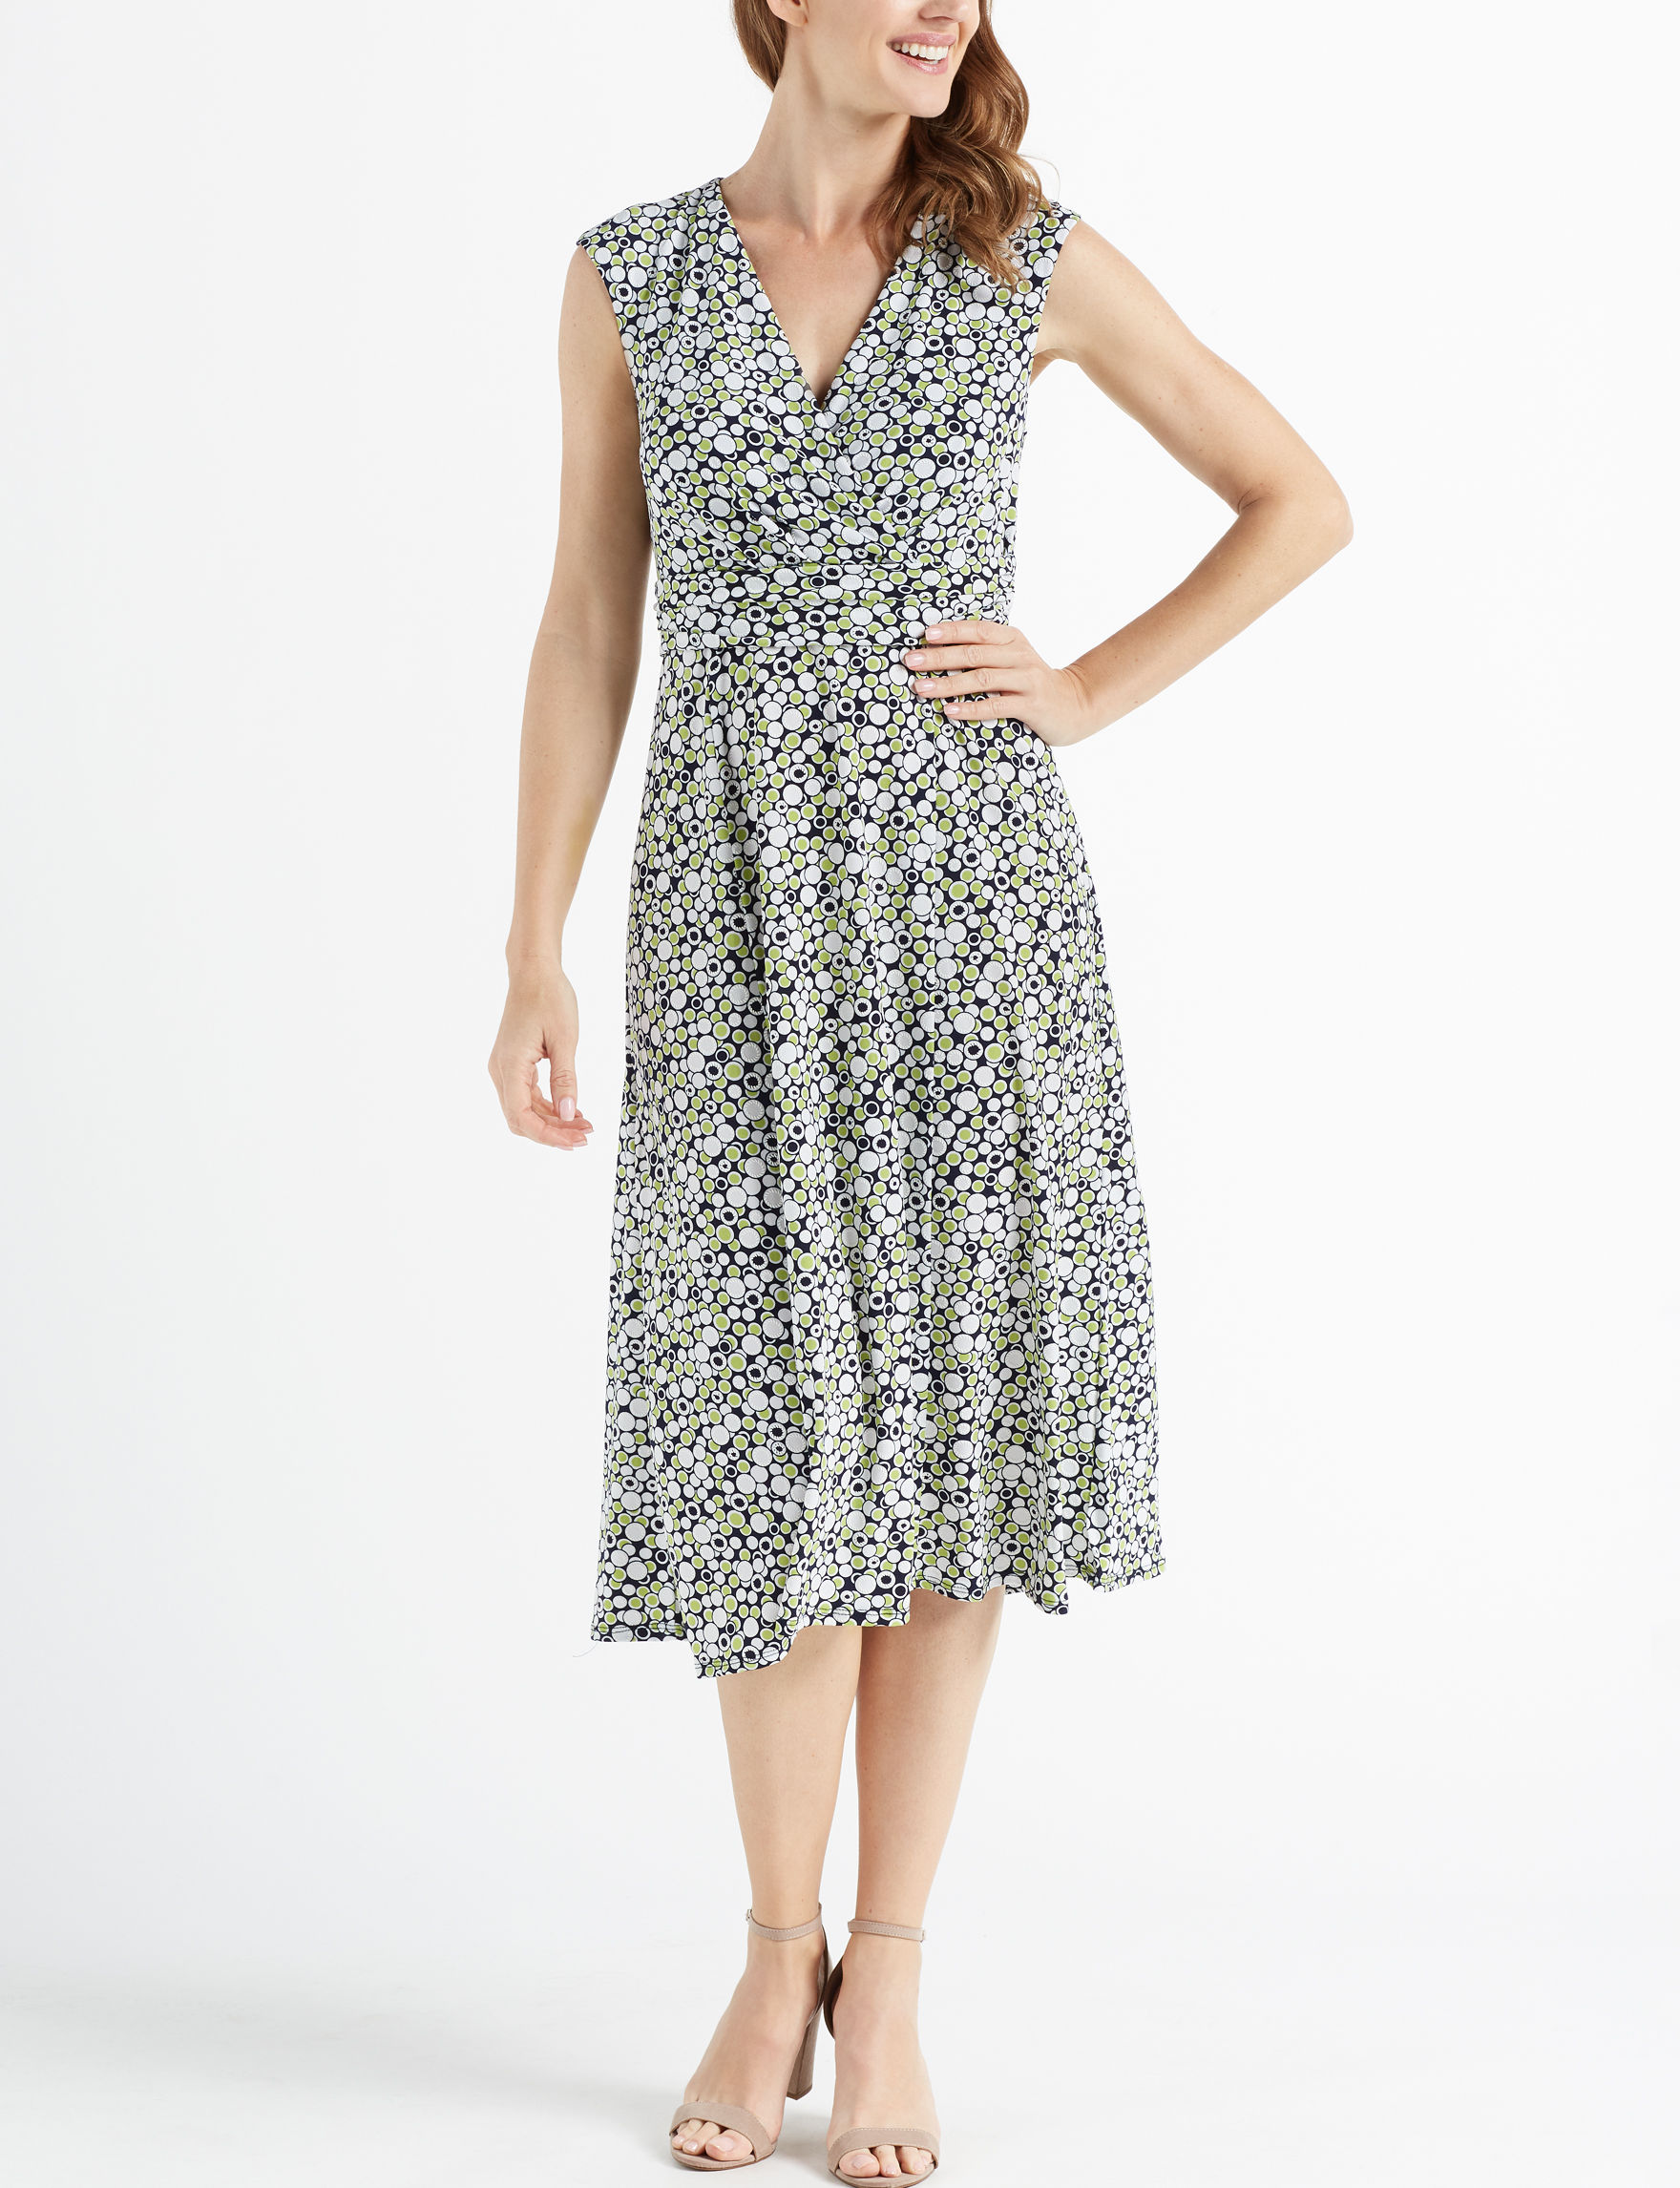 Perceptions Navy / Green Everyday & Casual A-line Dresses